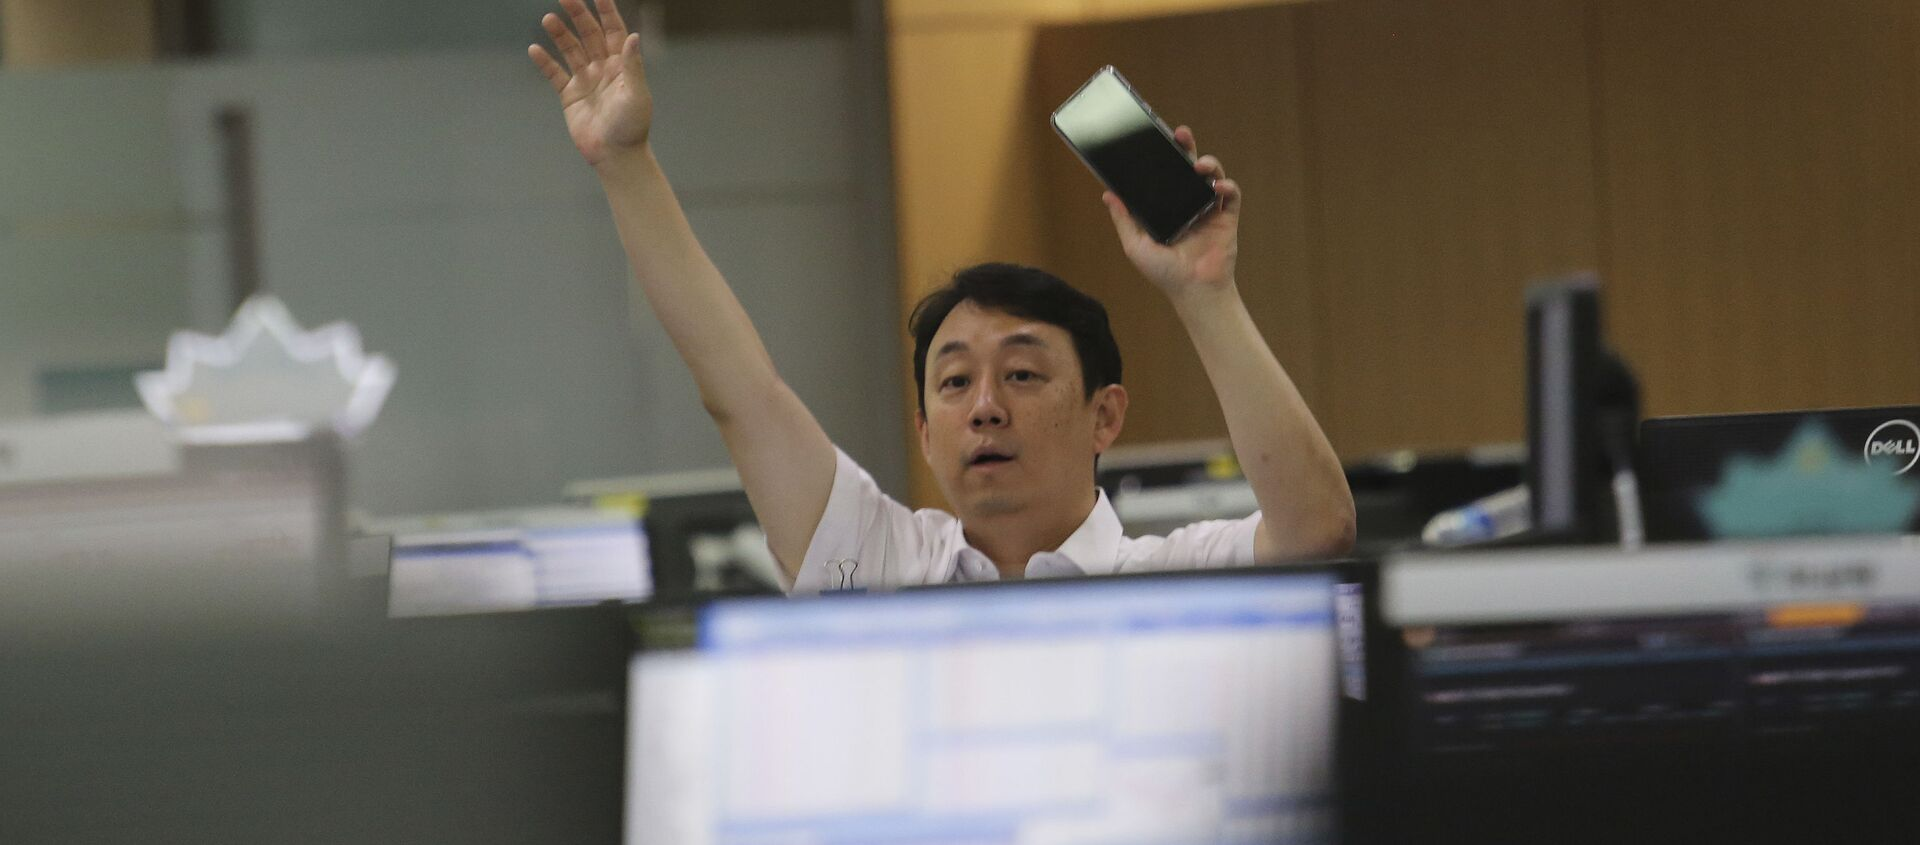 A currency trader gestures at the foreign exchange dealing room of the KEB Hana Bank headquarters in Seoul, South Korea, Thursday, July 9, 2020. - Sputnik International, 1920, 07.09.2020